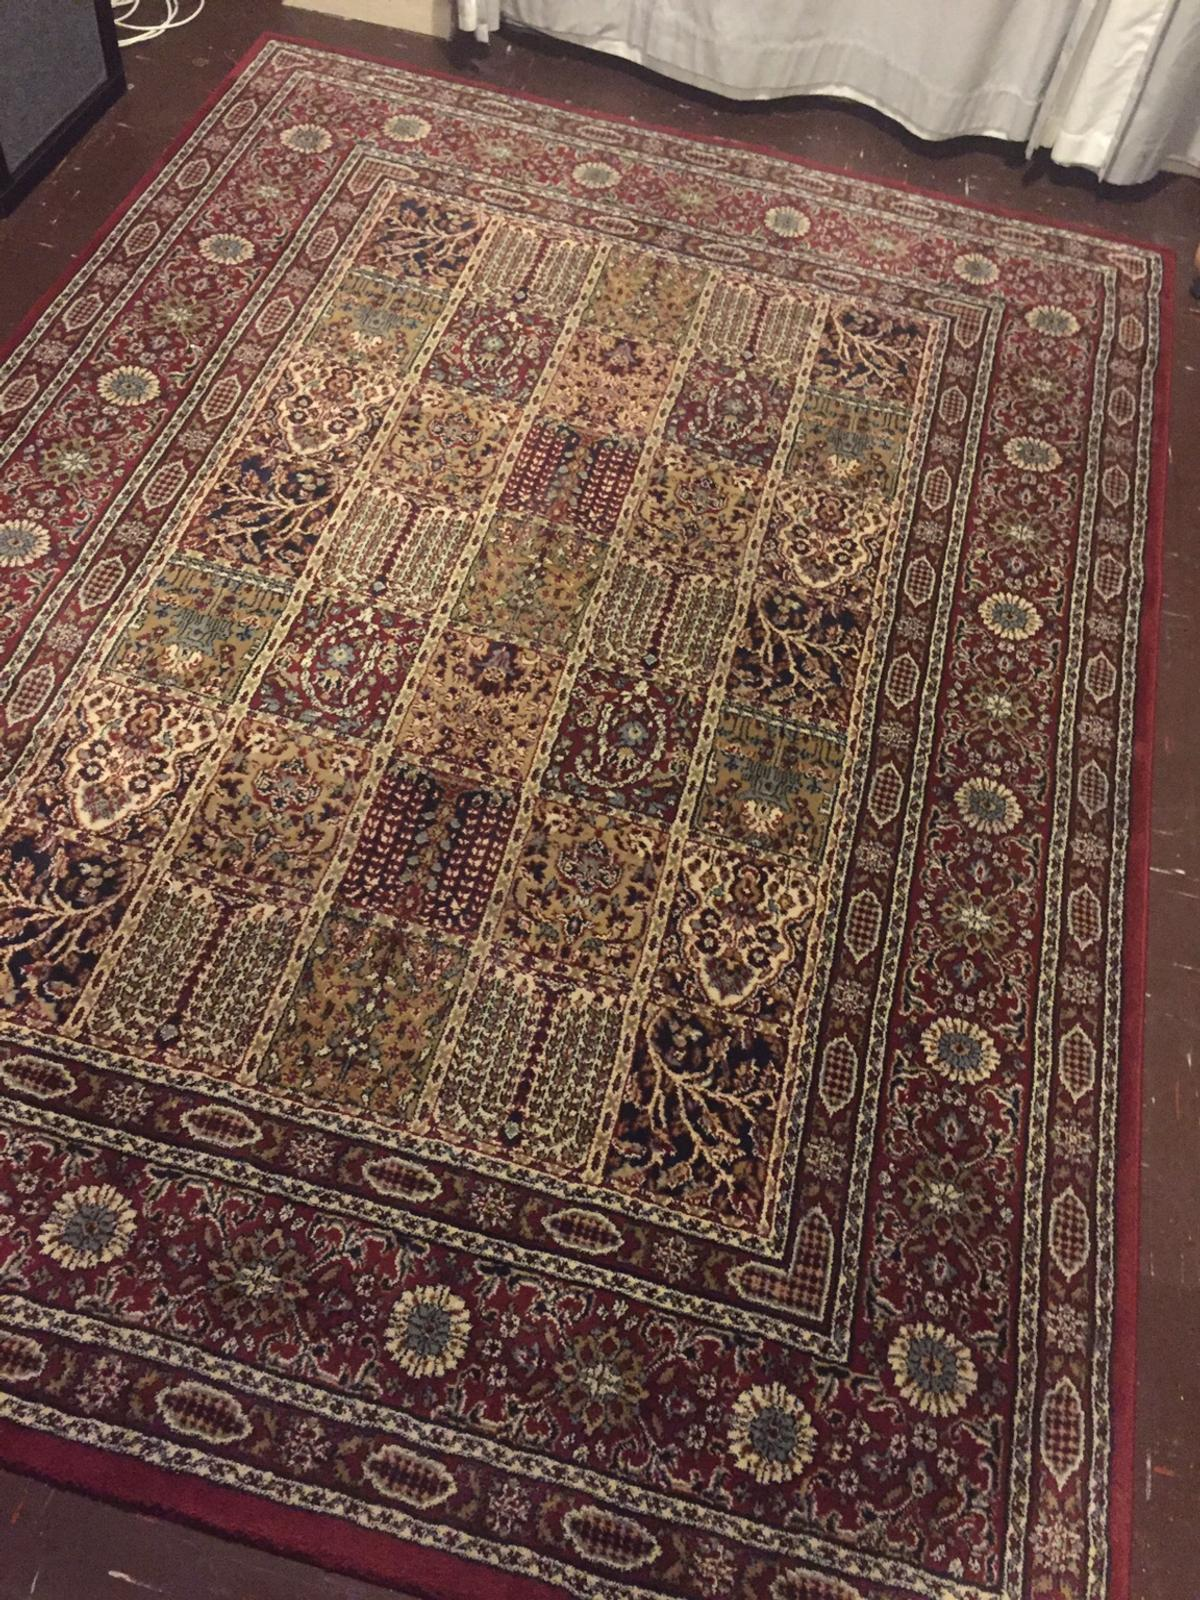 Stylish low pile rug in NW9 Barnet for